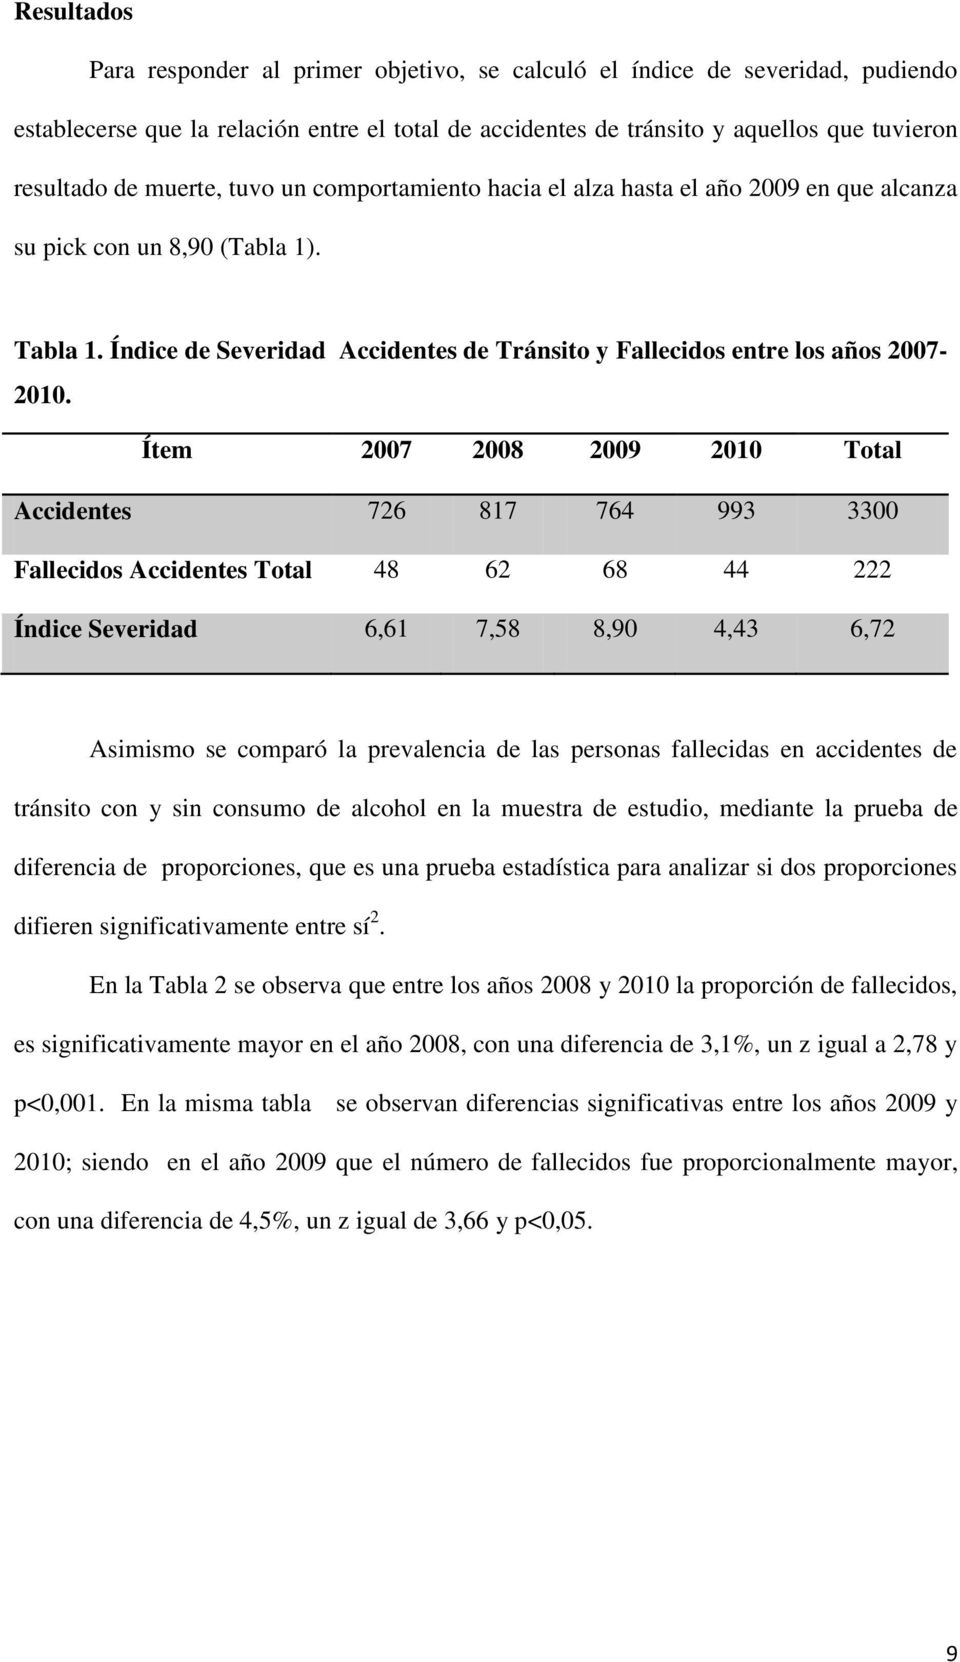 Ítem 2007 2008 2009 2010 Total Accidentes 726 817 764 993 3300 Fallecidos Accidentes Total 48 62 68 44 222 Índice Severidad 6,61 7,58 8,90 4,43 6,72 Asimismo se comparó la prevalencia de las personas